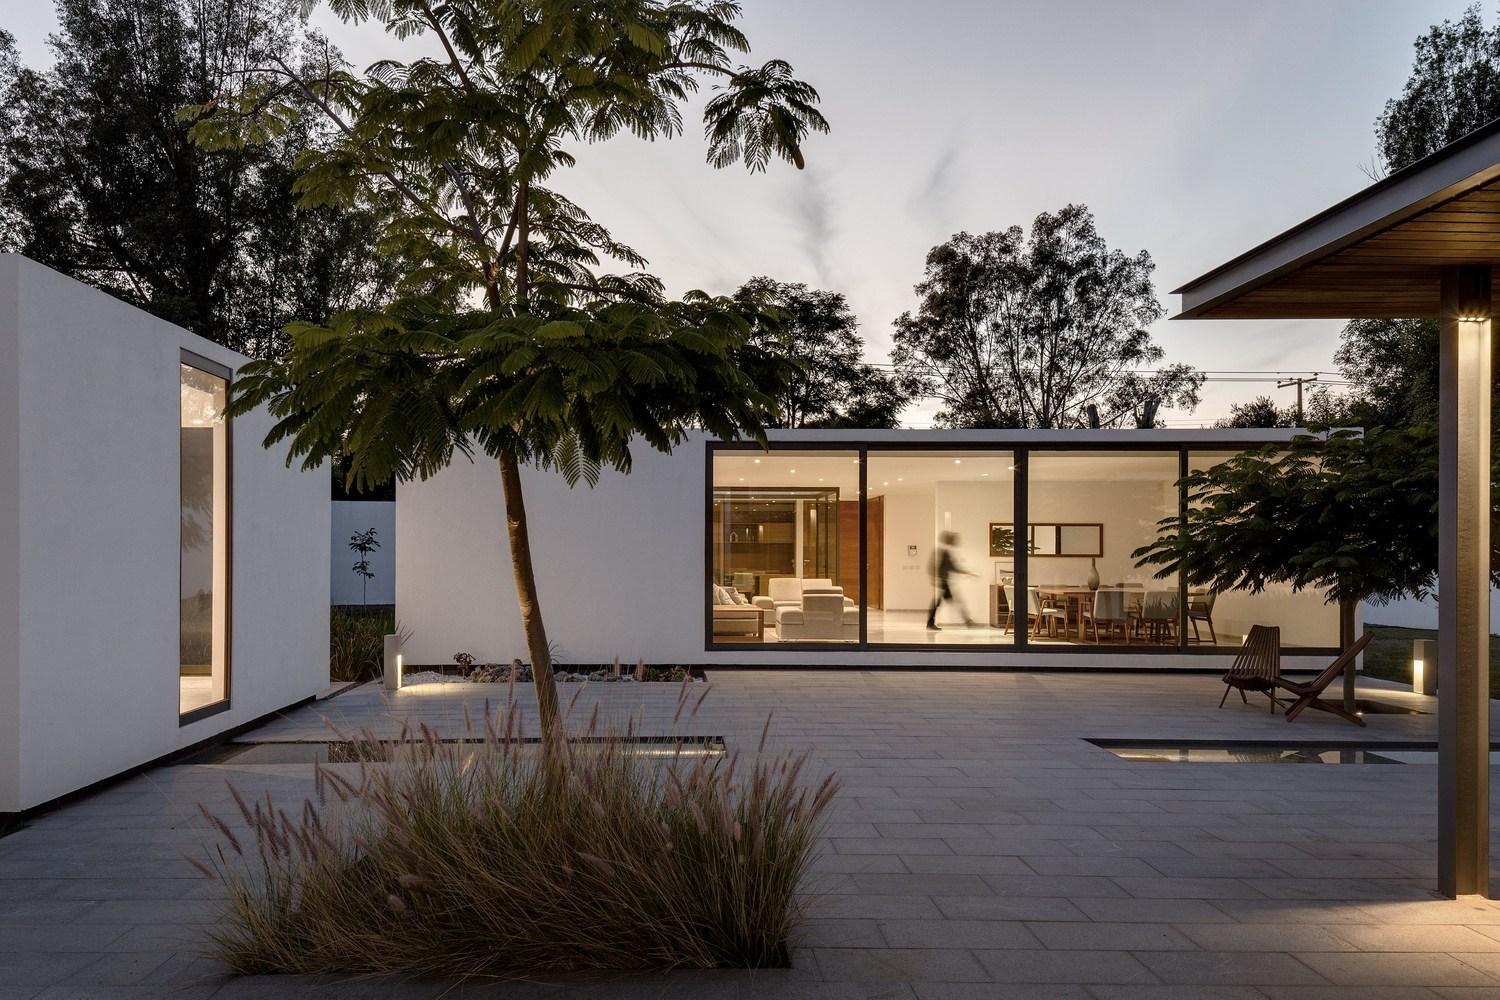 4 1 4 house by as d asociaci n de dise o in jurica mexico - Arquitectura minimalista ...